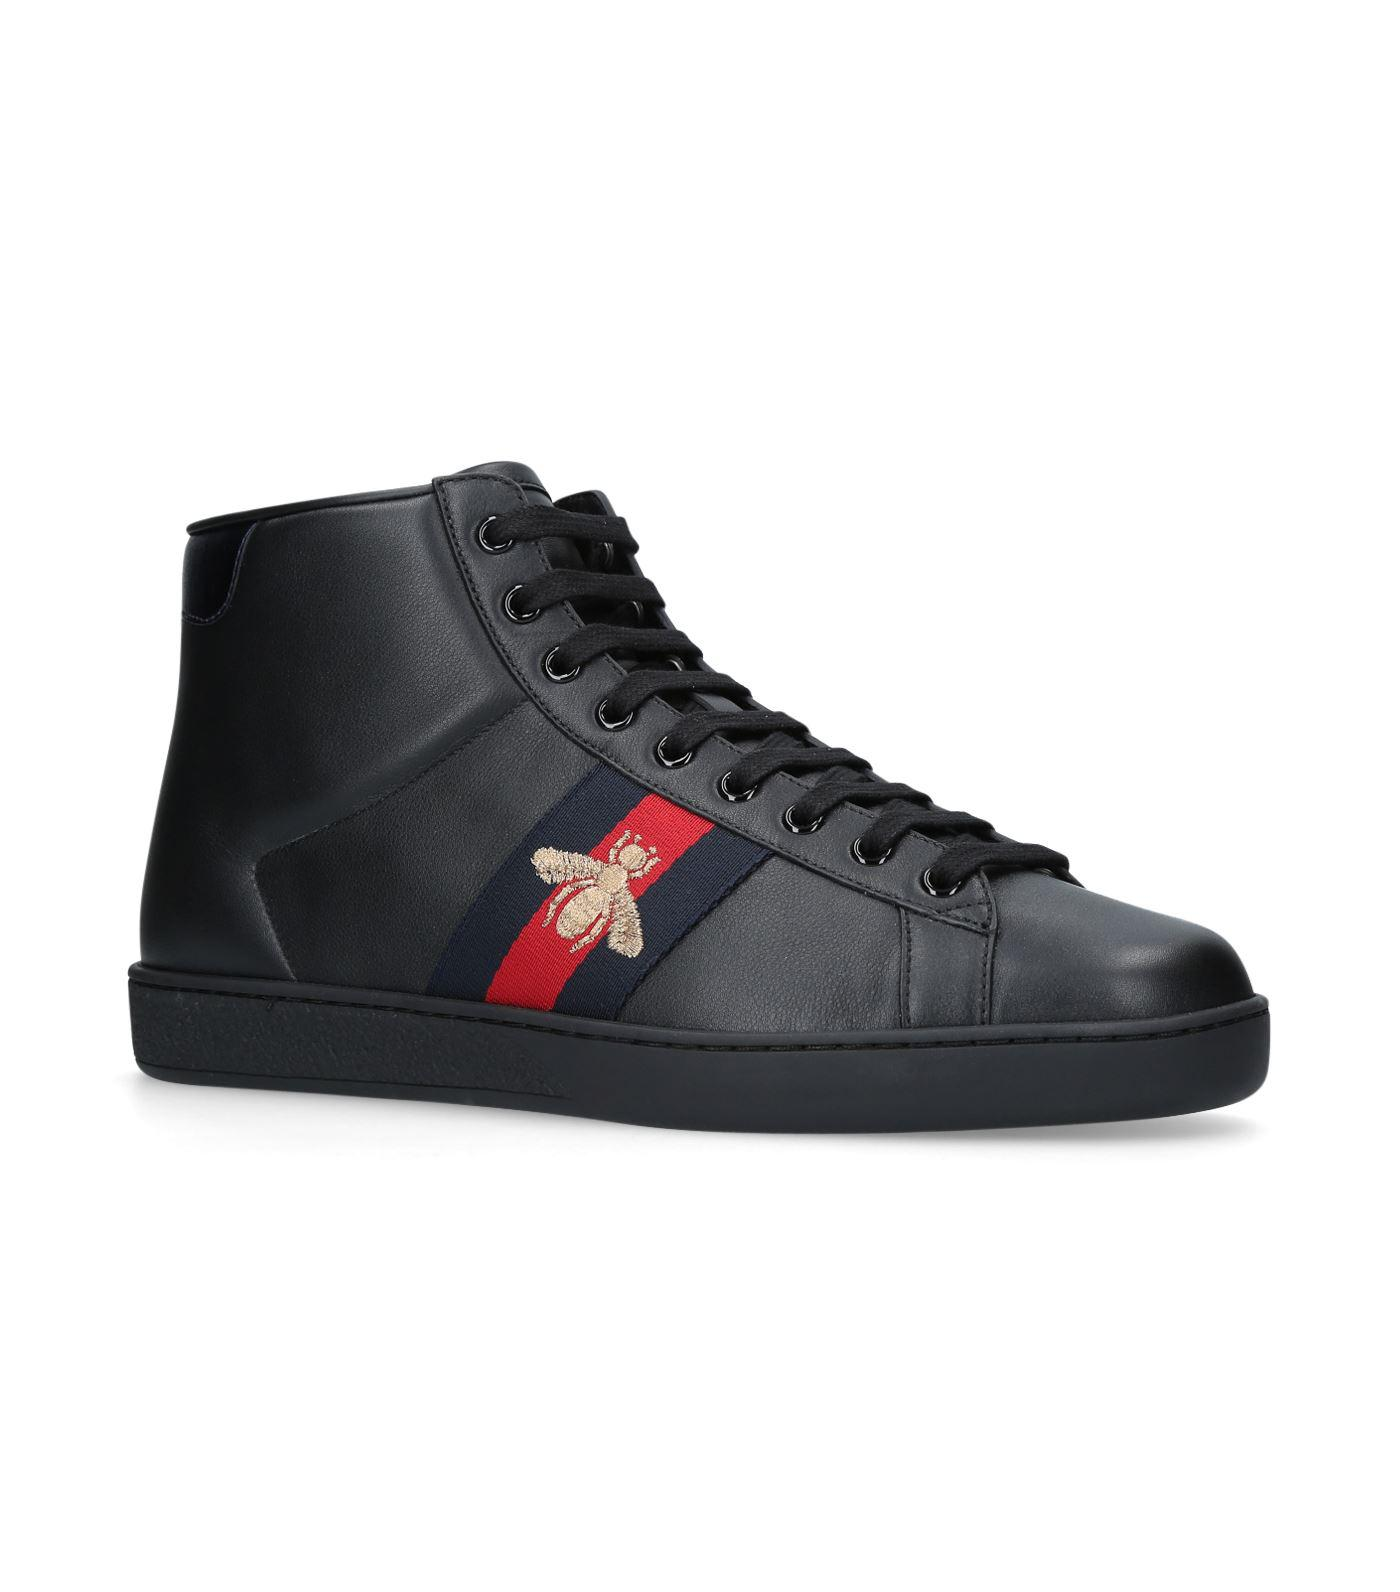 81e20281b Gucci New Ace Bee Embroidered High Top Sneakers in Black for Men - Lyst